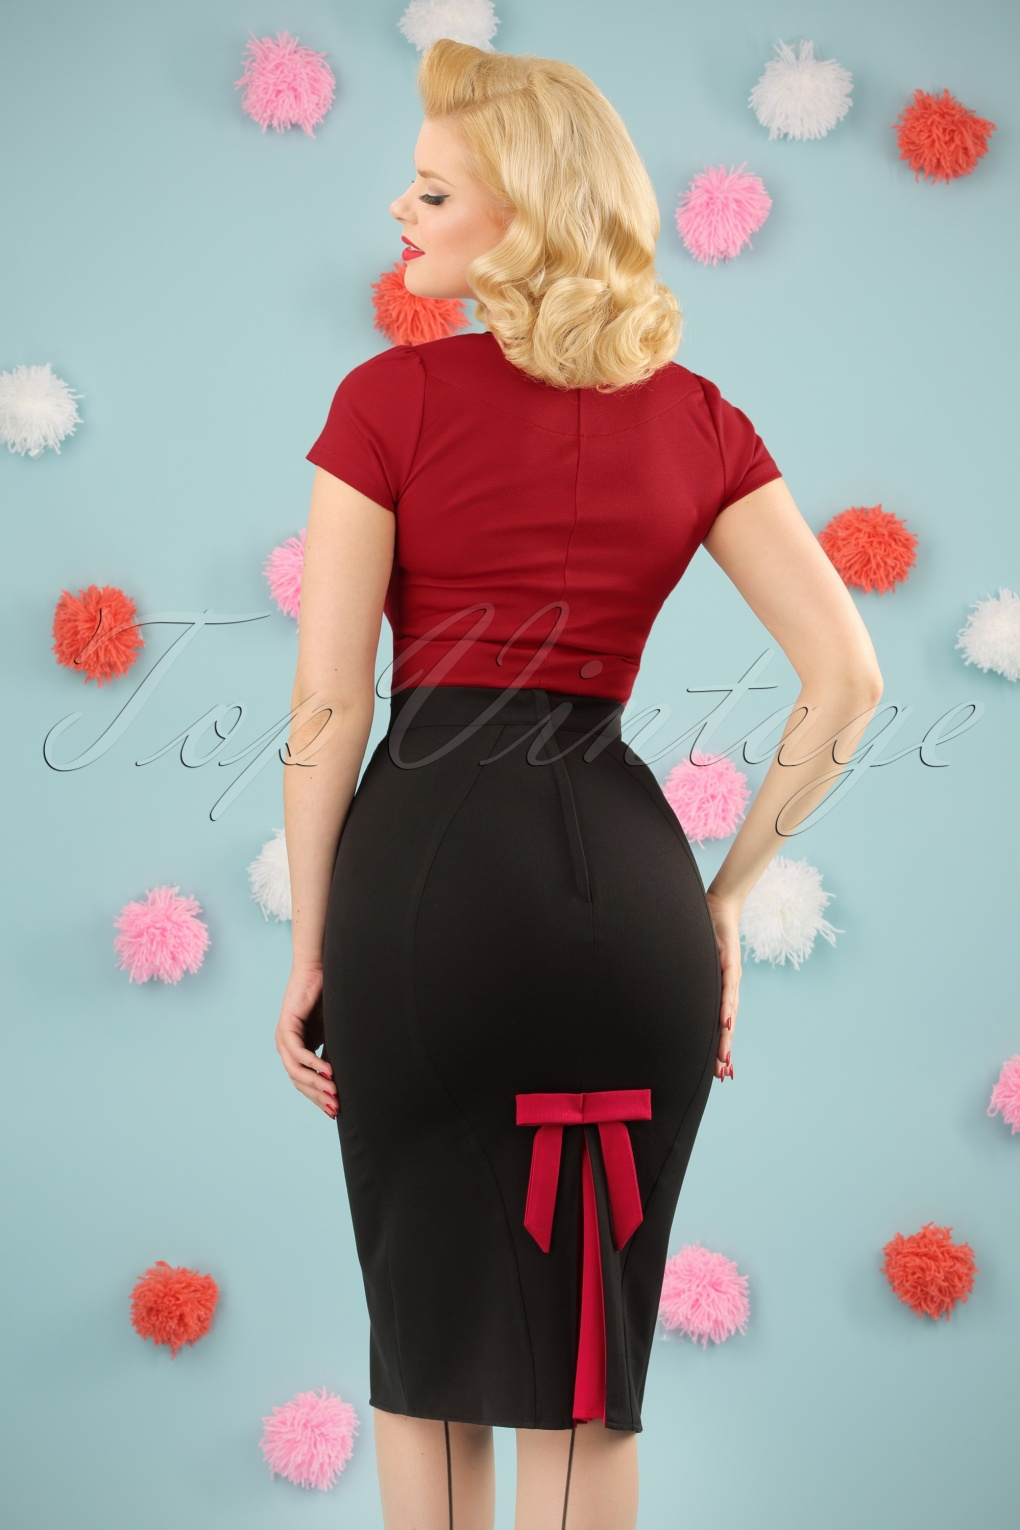 1950s Dresses, 50s Dresses | Swing, Wiggle, Pin Up Dresses TopVintage Exclusive  50s Frances Bow Pencil Skirt in Black and Red £50.31 AT vintagedancer.com